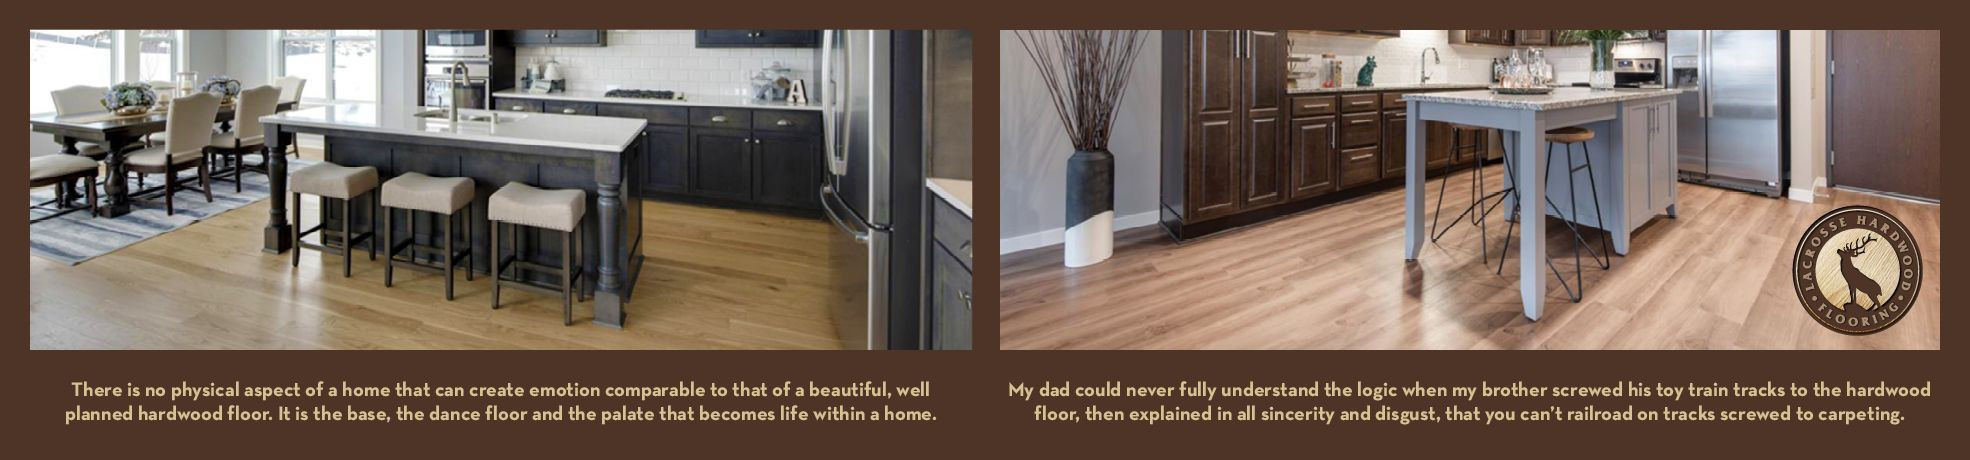 pictures of engineered hardwood floors of elegant parquet flooring home interior design ideas throughout parquet flooring lovely 40 engineered hardwood flooring vs hardwood concept of elegant parquet flooring